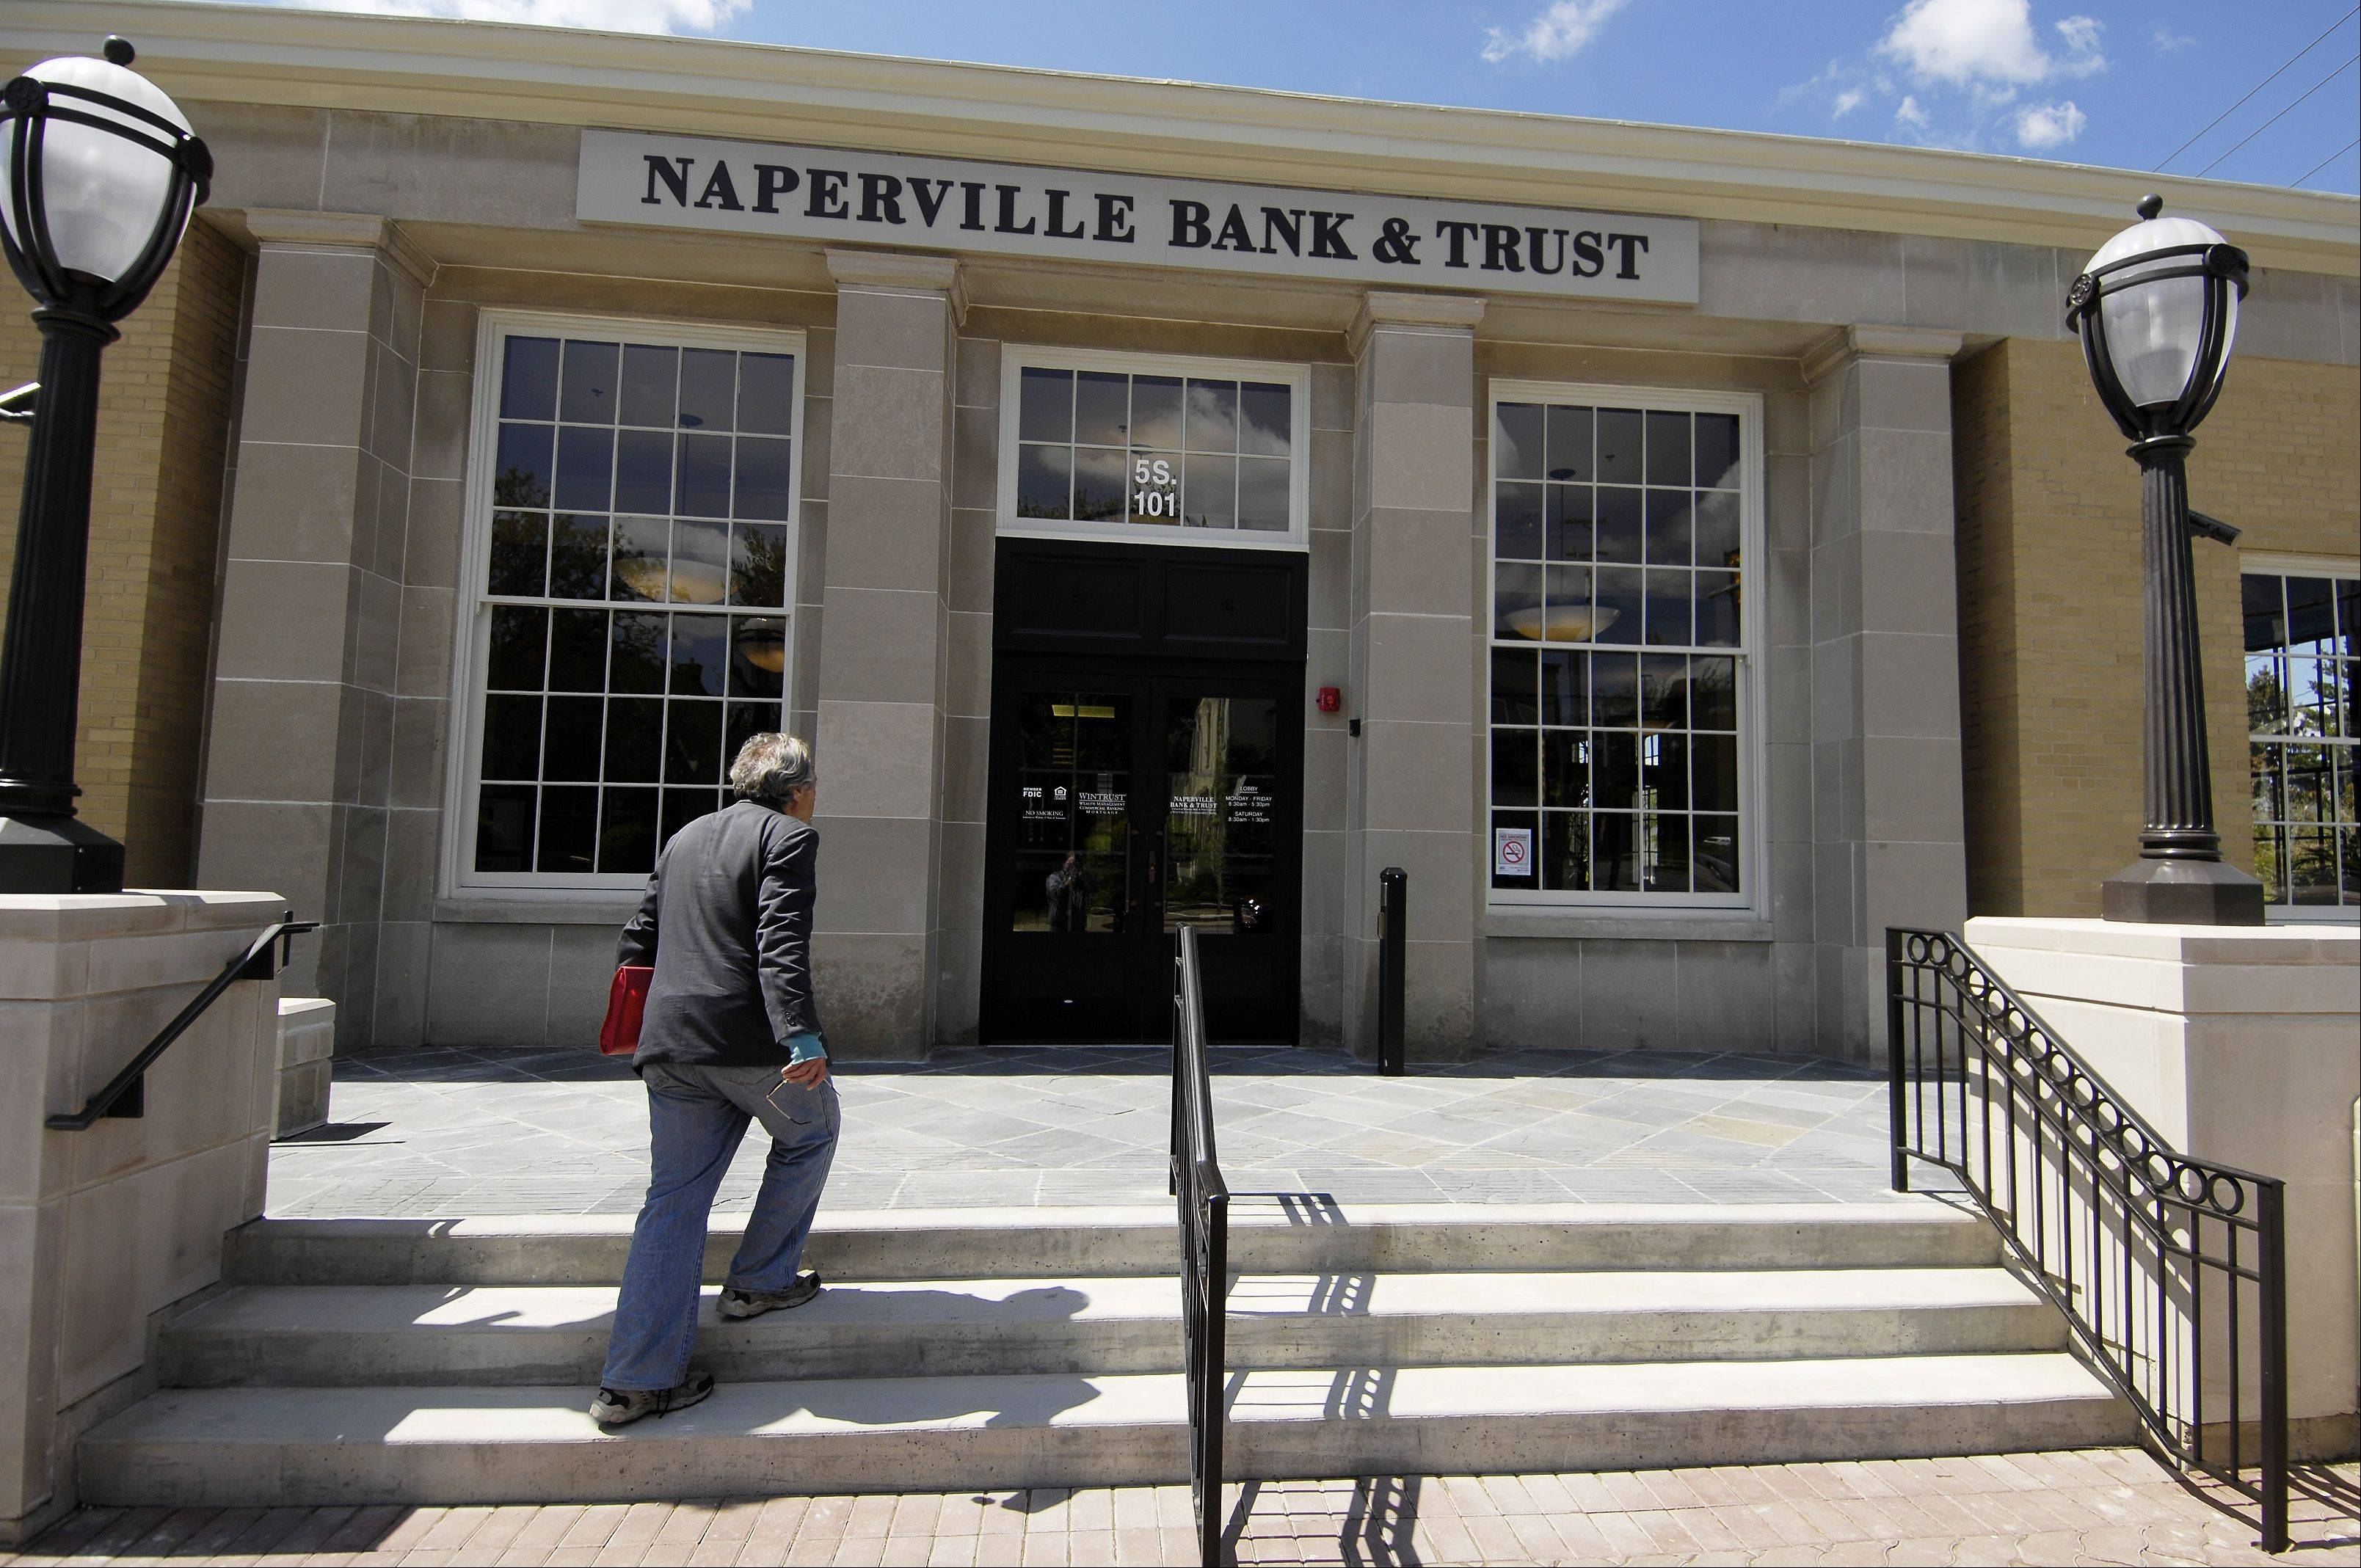 The Naperville Bank & Trust opened Monday morning at 5 S. Washington St. in downtown Naperville.